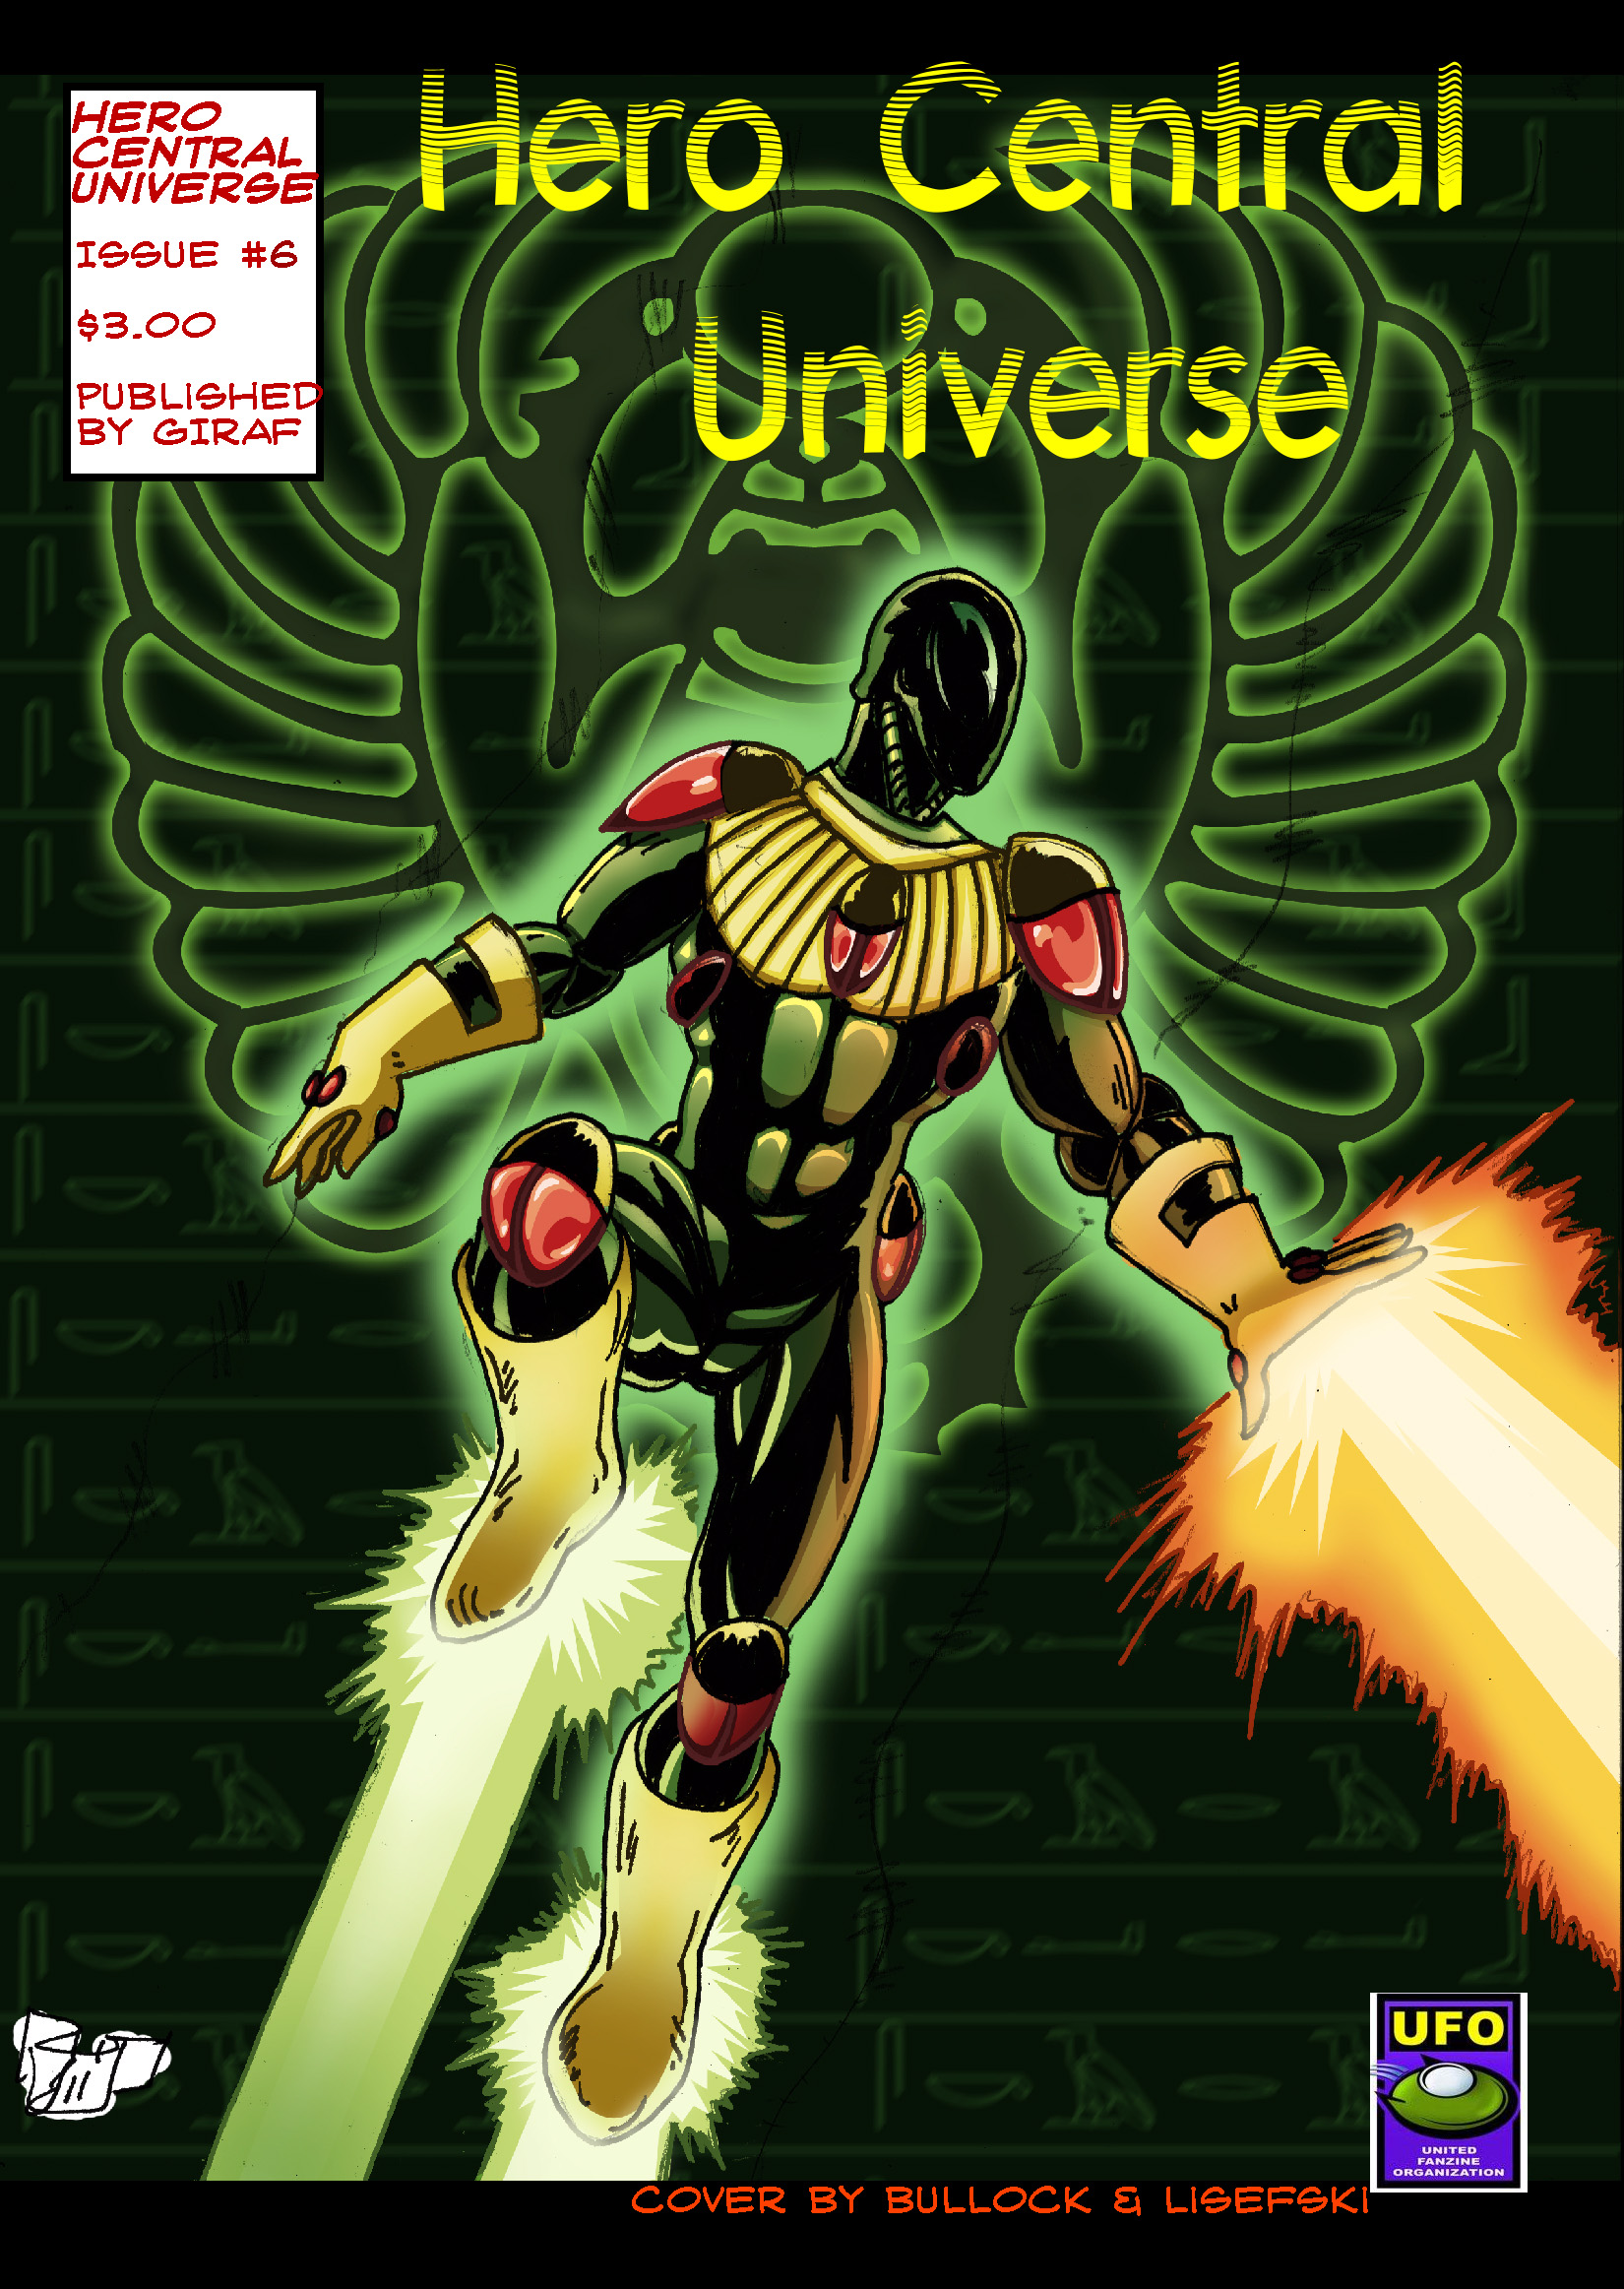 Introduction of the Egyptian hero Jade Scarab as he rescues his fellow academics from a former student gone rogue who has become an ally with the alien Orbitals. Flora Ironwood's dreams of an evil taking over this world grows stronger. Special cover designed and colored by Steve Lisefski. Available at $3.00 for hard copy, $0.99 for digital copy. Co-published by UFO.